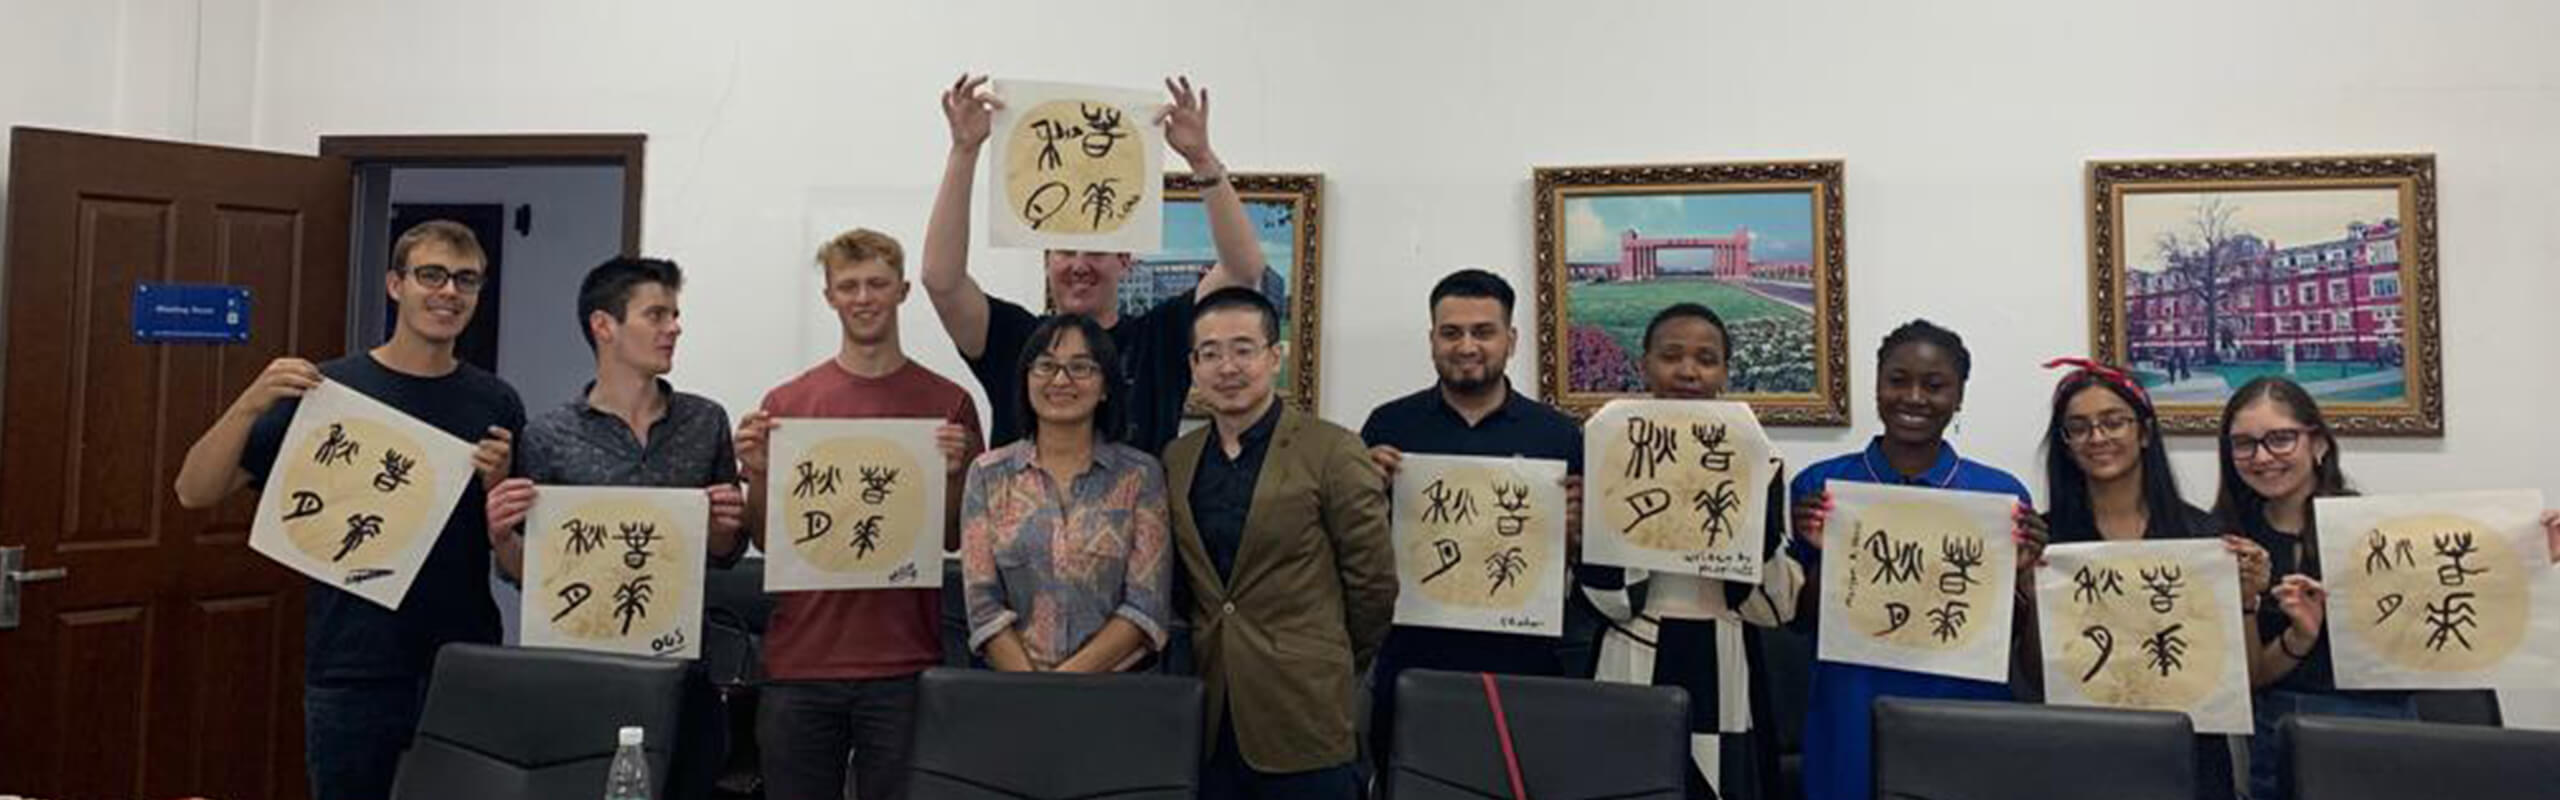 Students in calligraphy activity class